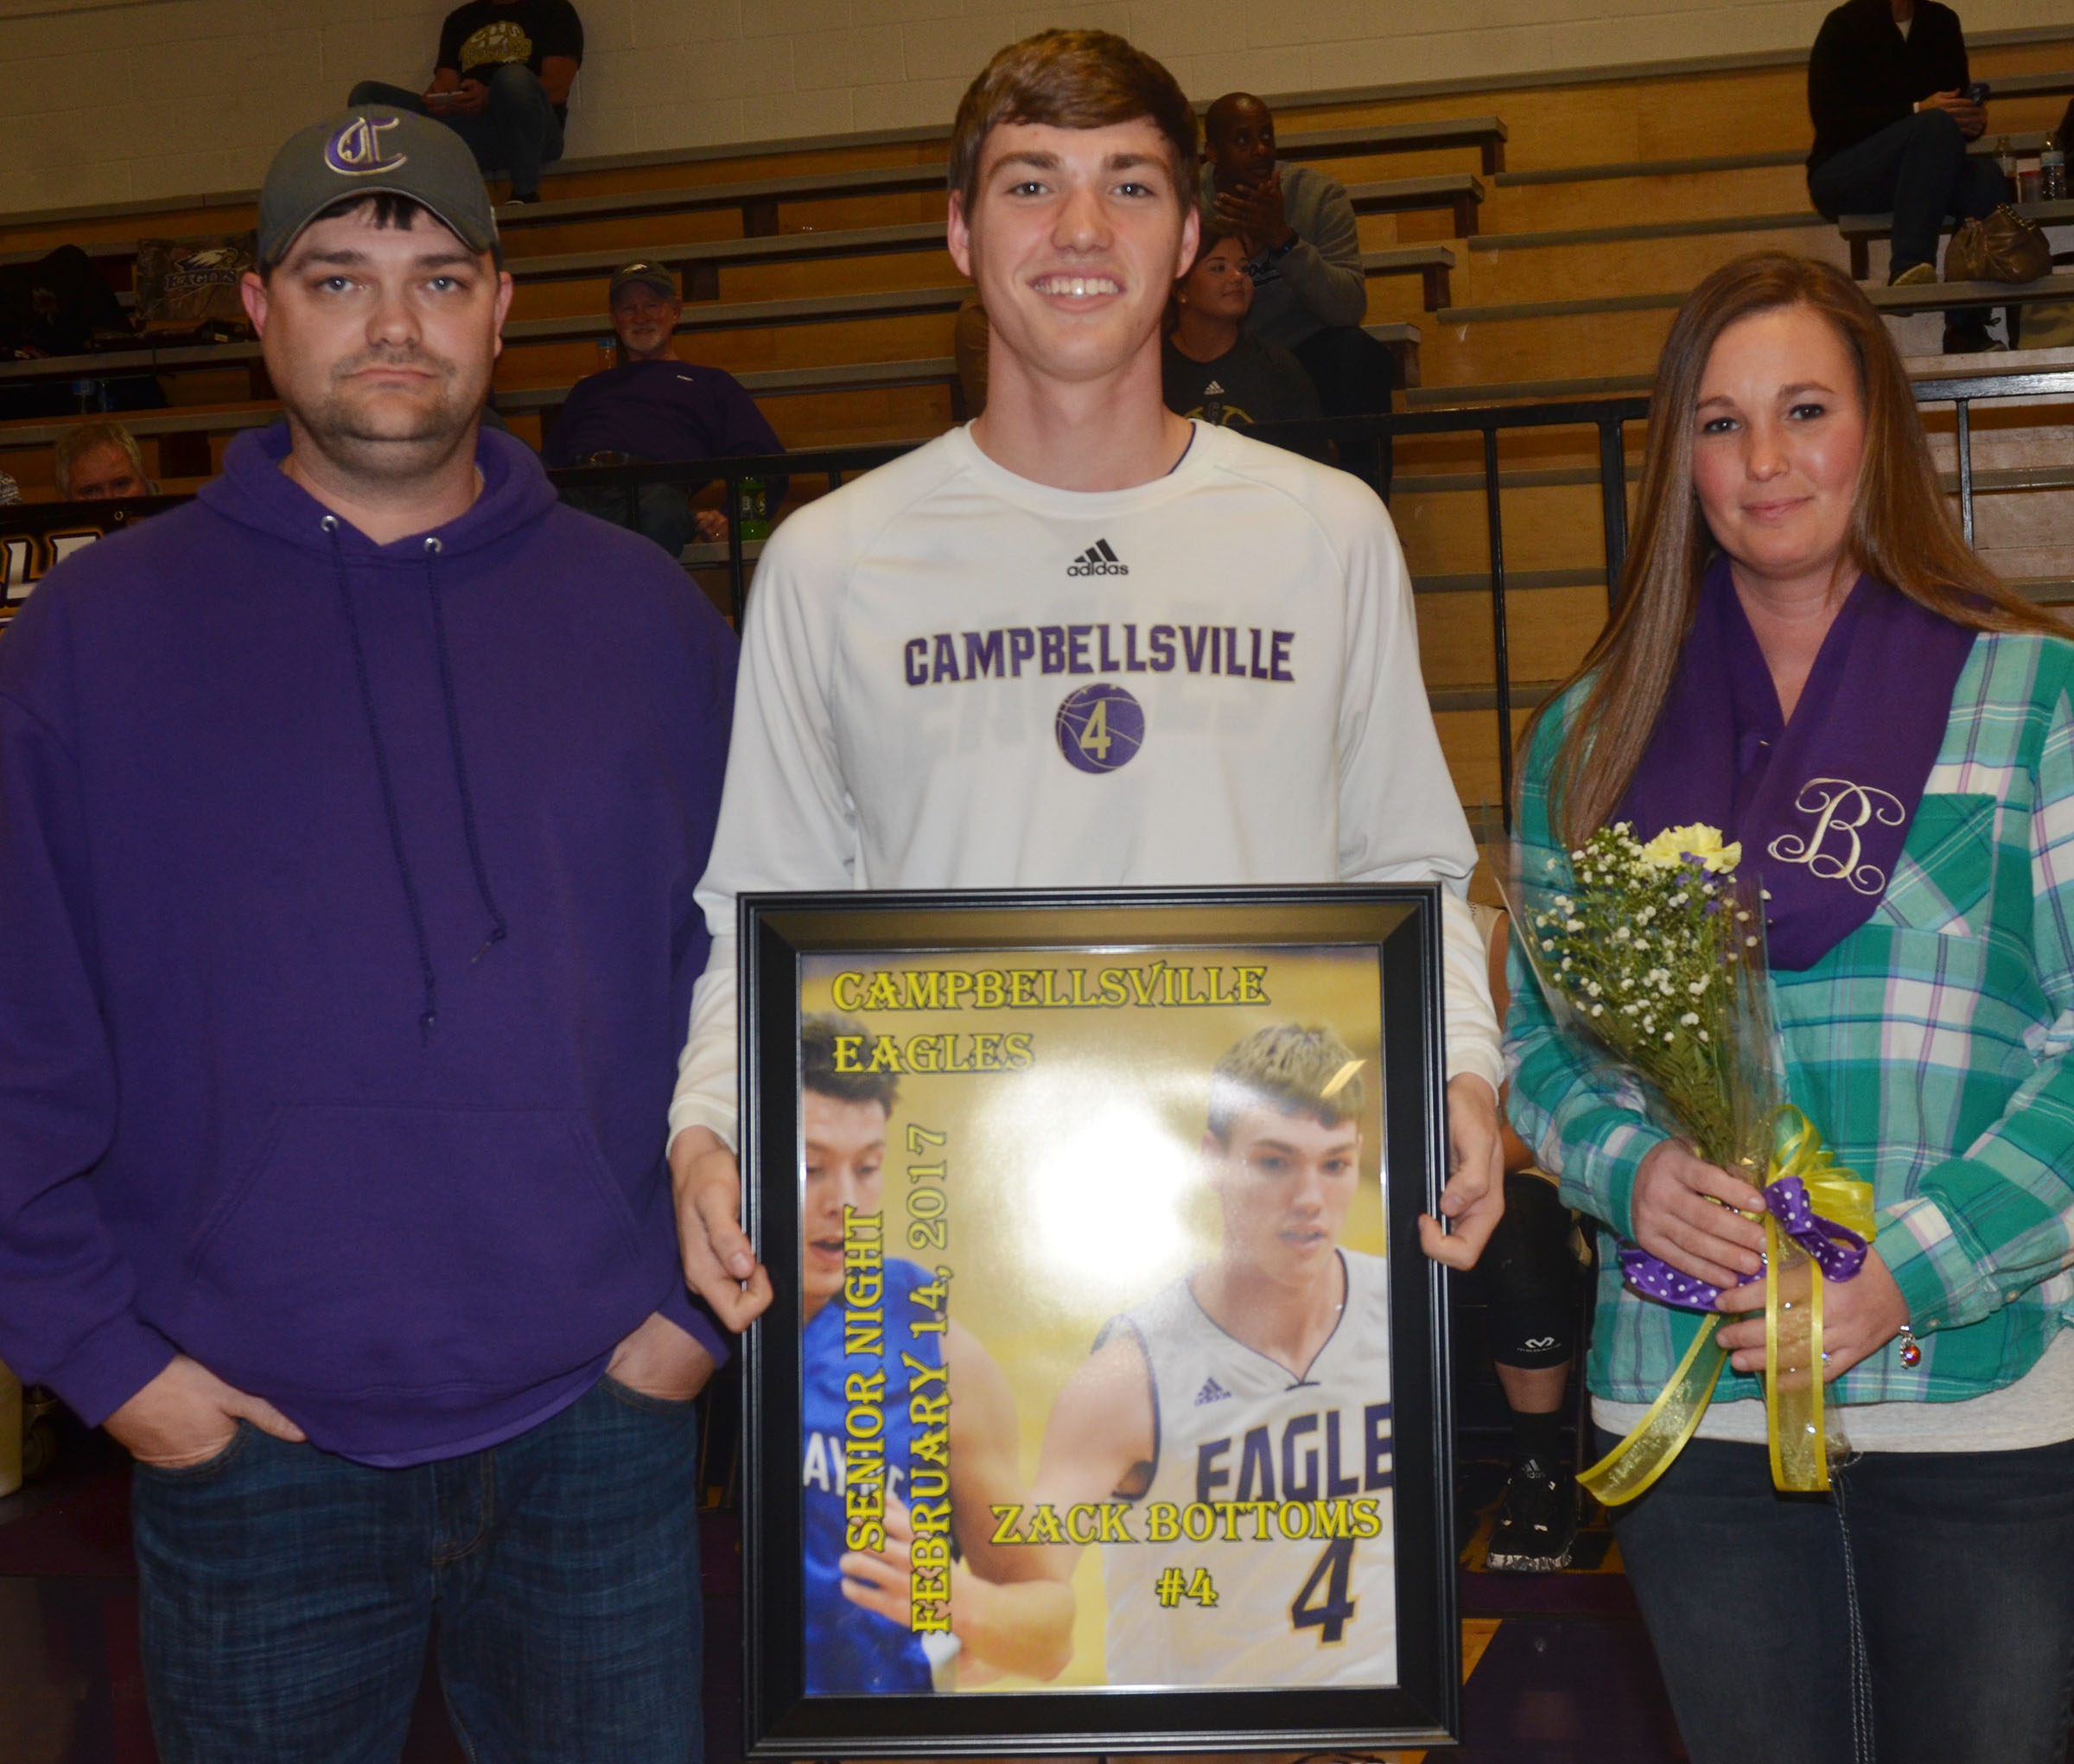 CHS senior boys' basketball player Zack Bottoms is honored. He is pictured with his parents, Adam and Kecia Bottoms.